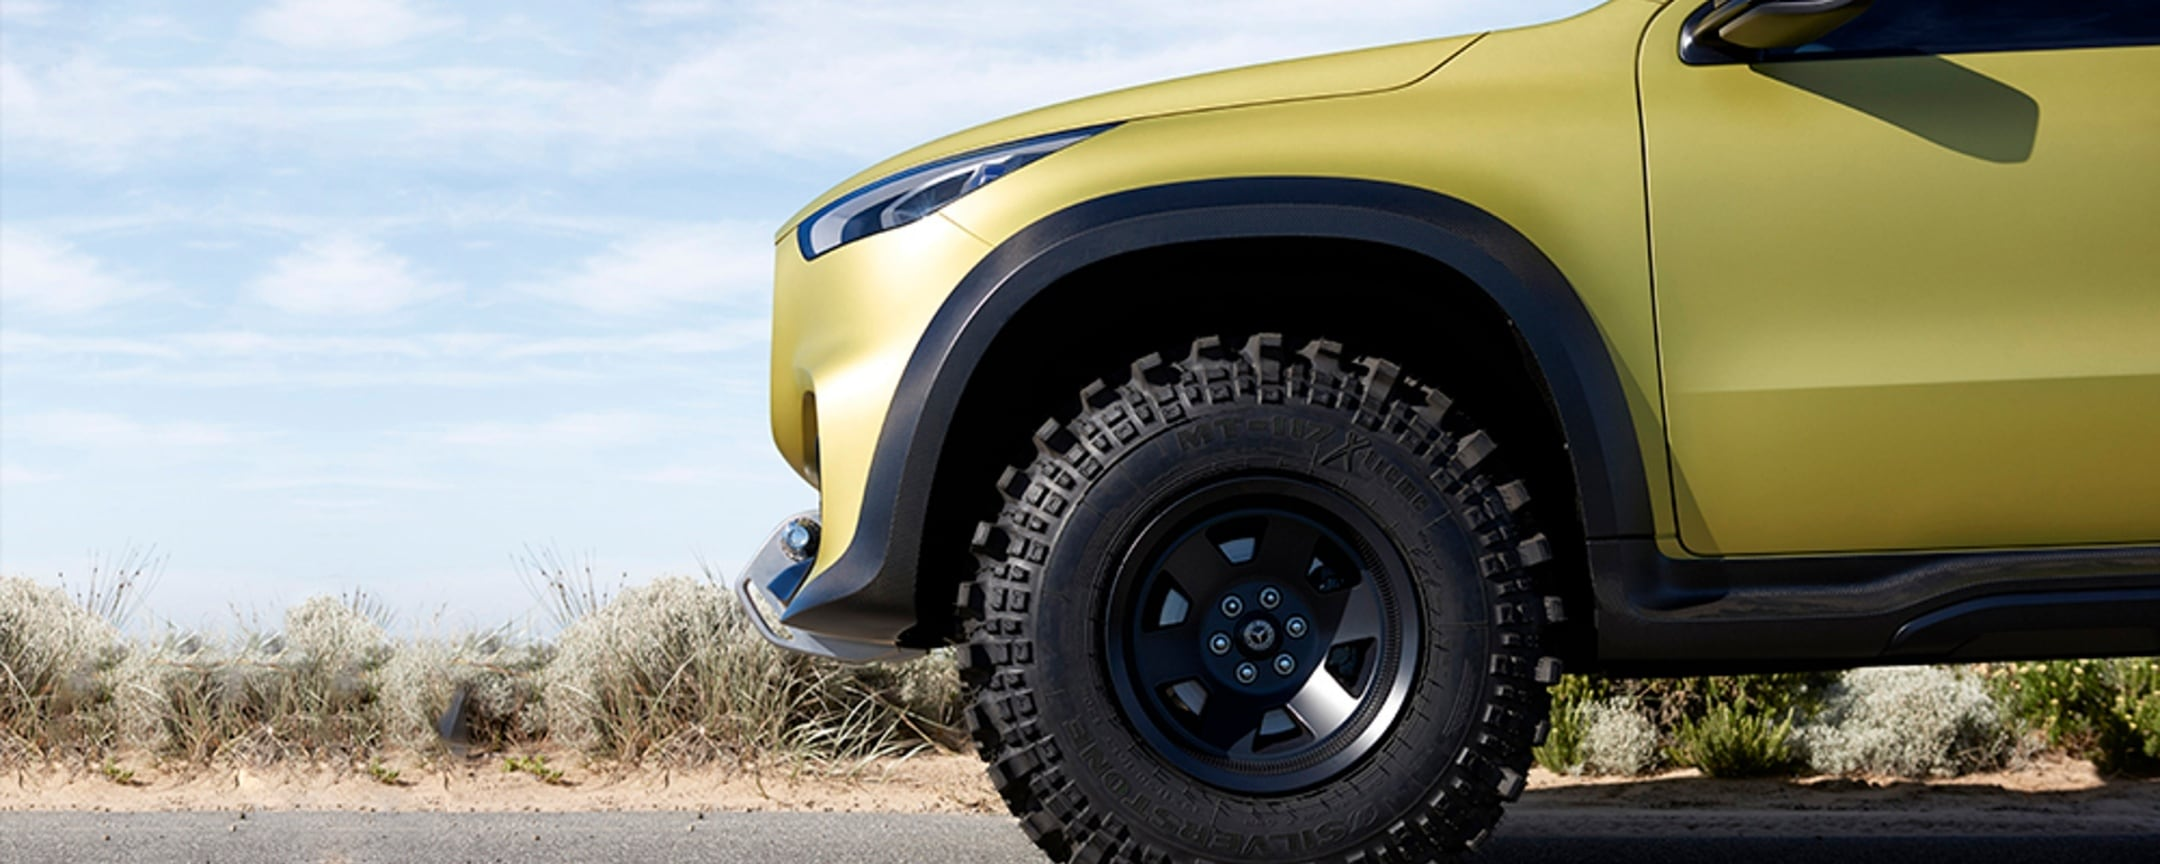 Vans, Love your work, X-class concept vehicle visits Australia, Premium ute, Luxury